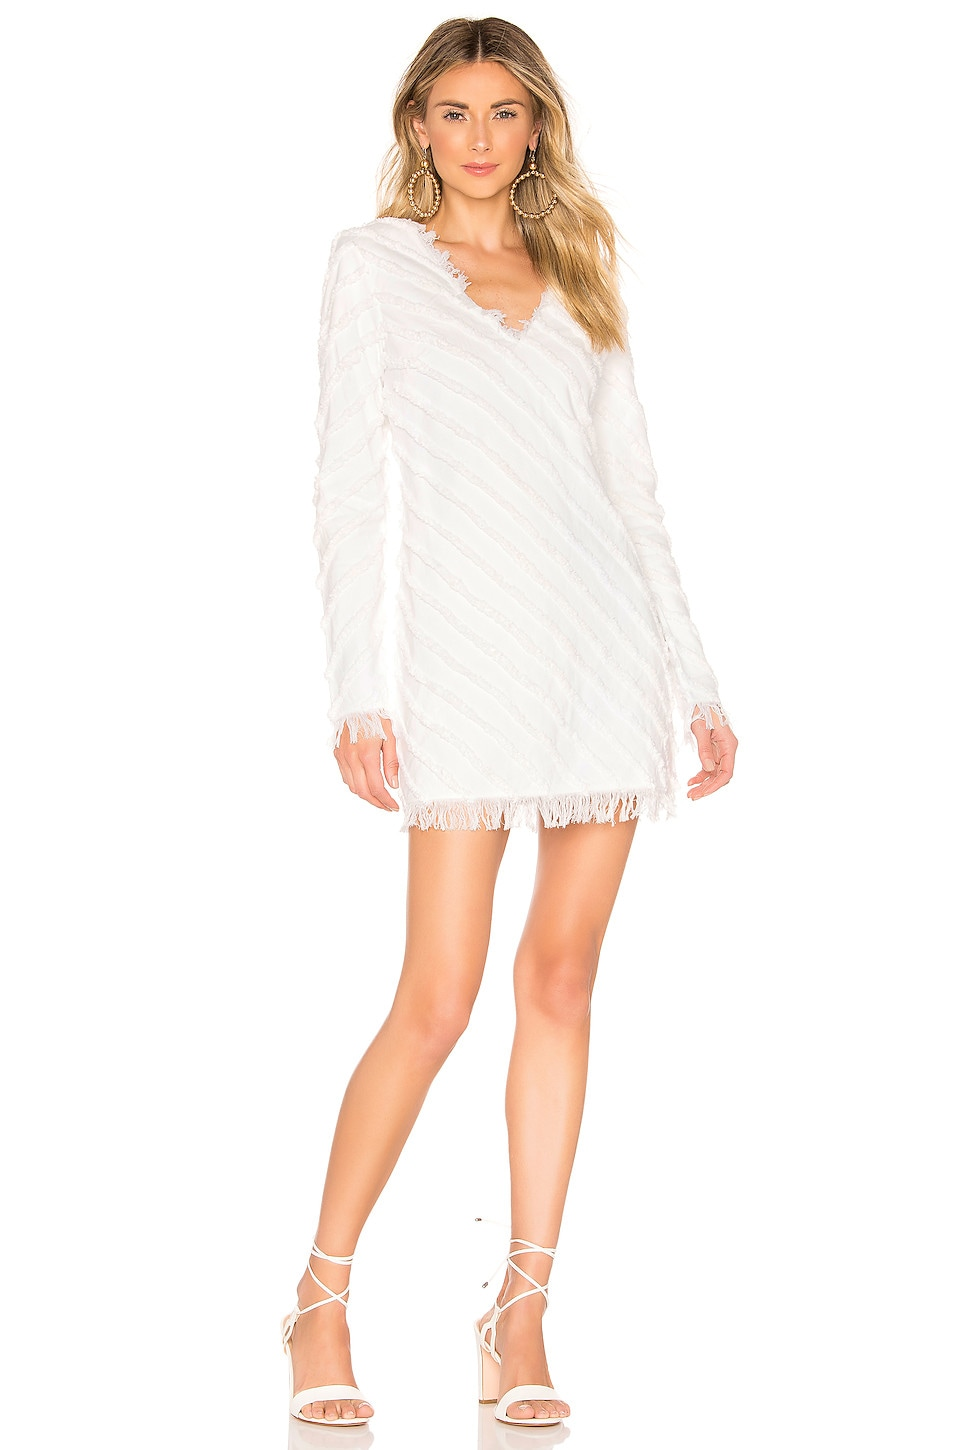 House of Harlow 1960 X REVOLVE Parker Dress in Ivory